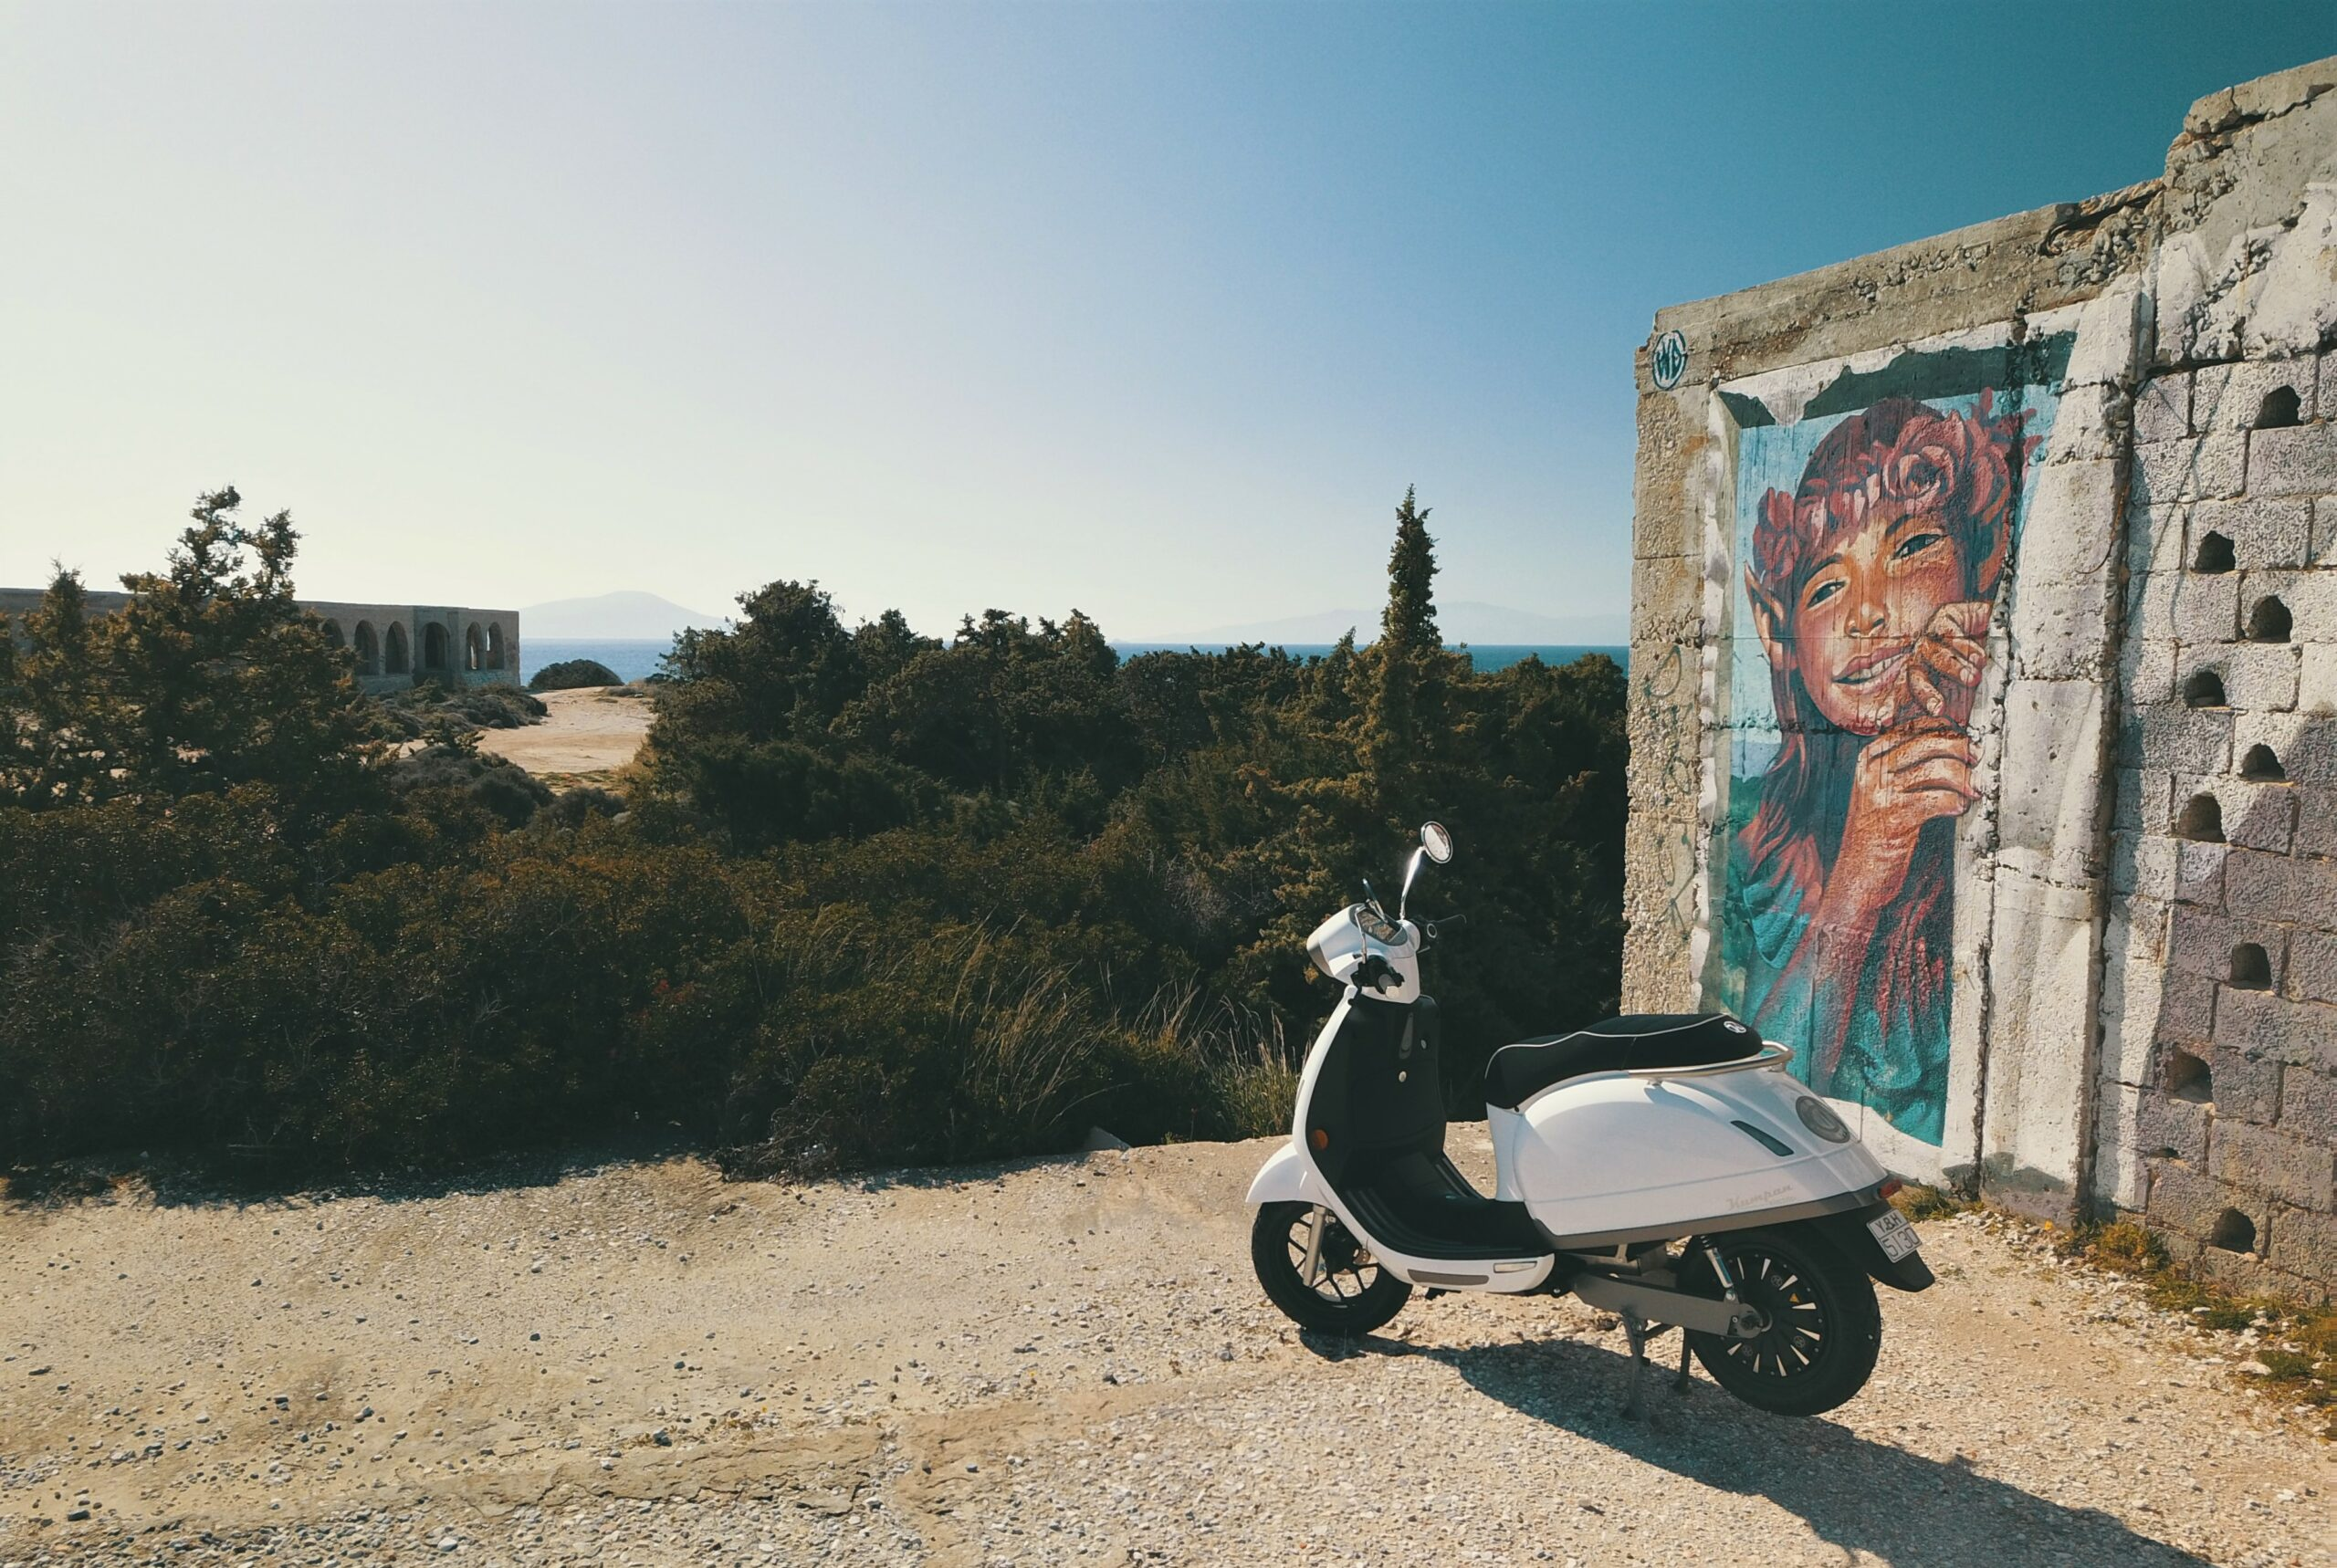 kumpan e scooter emobility rental greece naxos